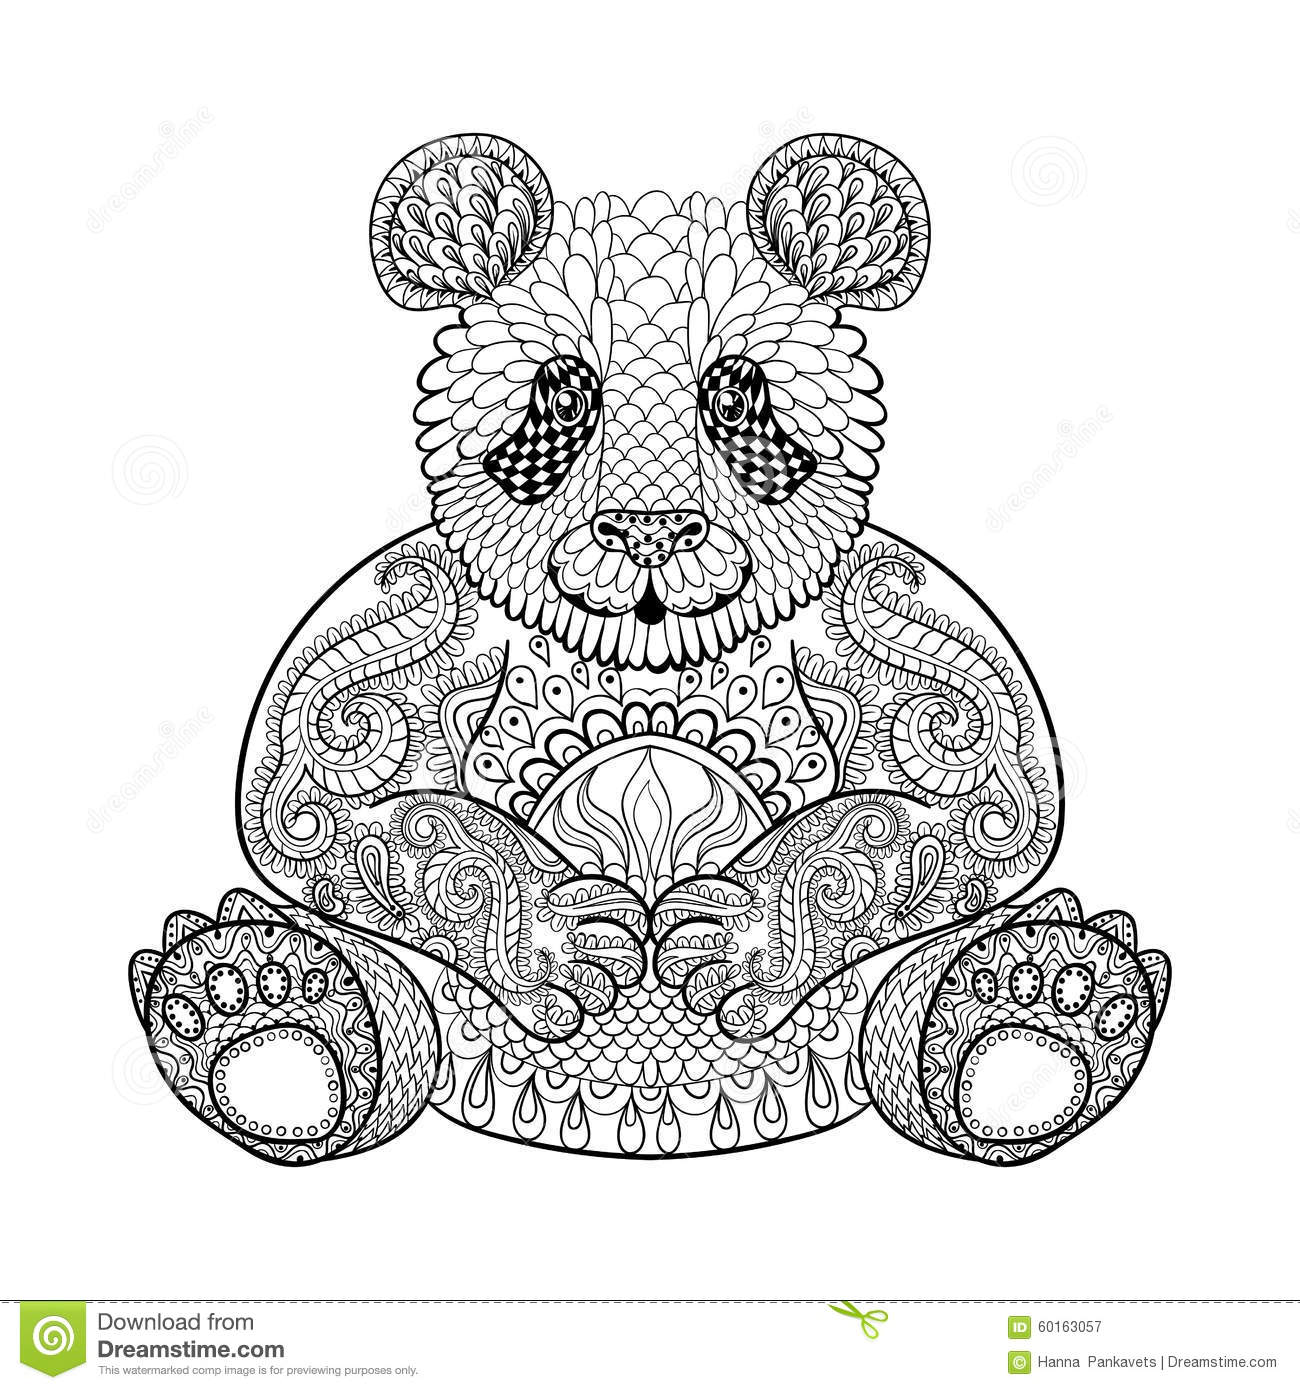 Zen colouring book animals - Hand Drawn Tribal Panda Animal Totem For Adult Coloring Page Download Image Zen Colouring